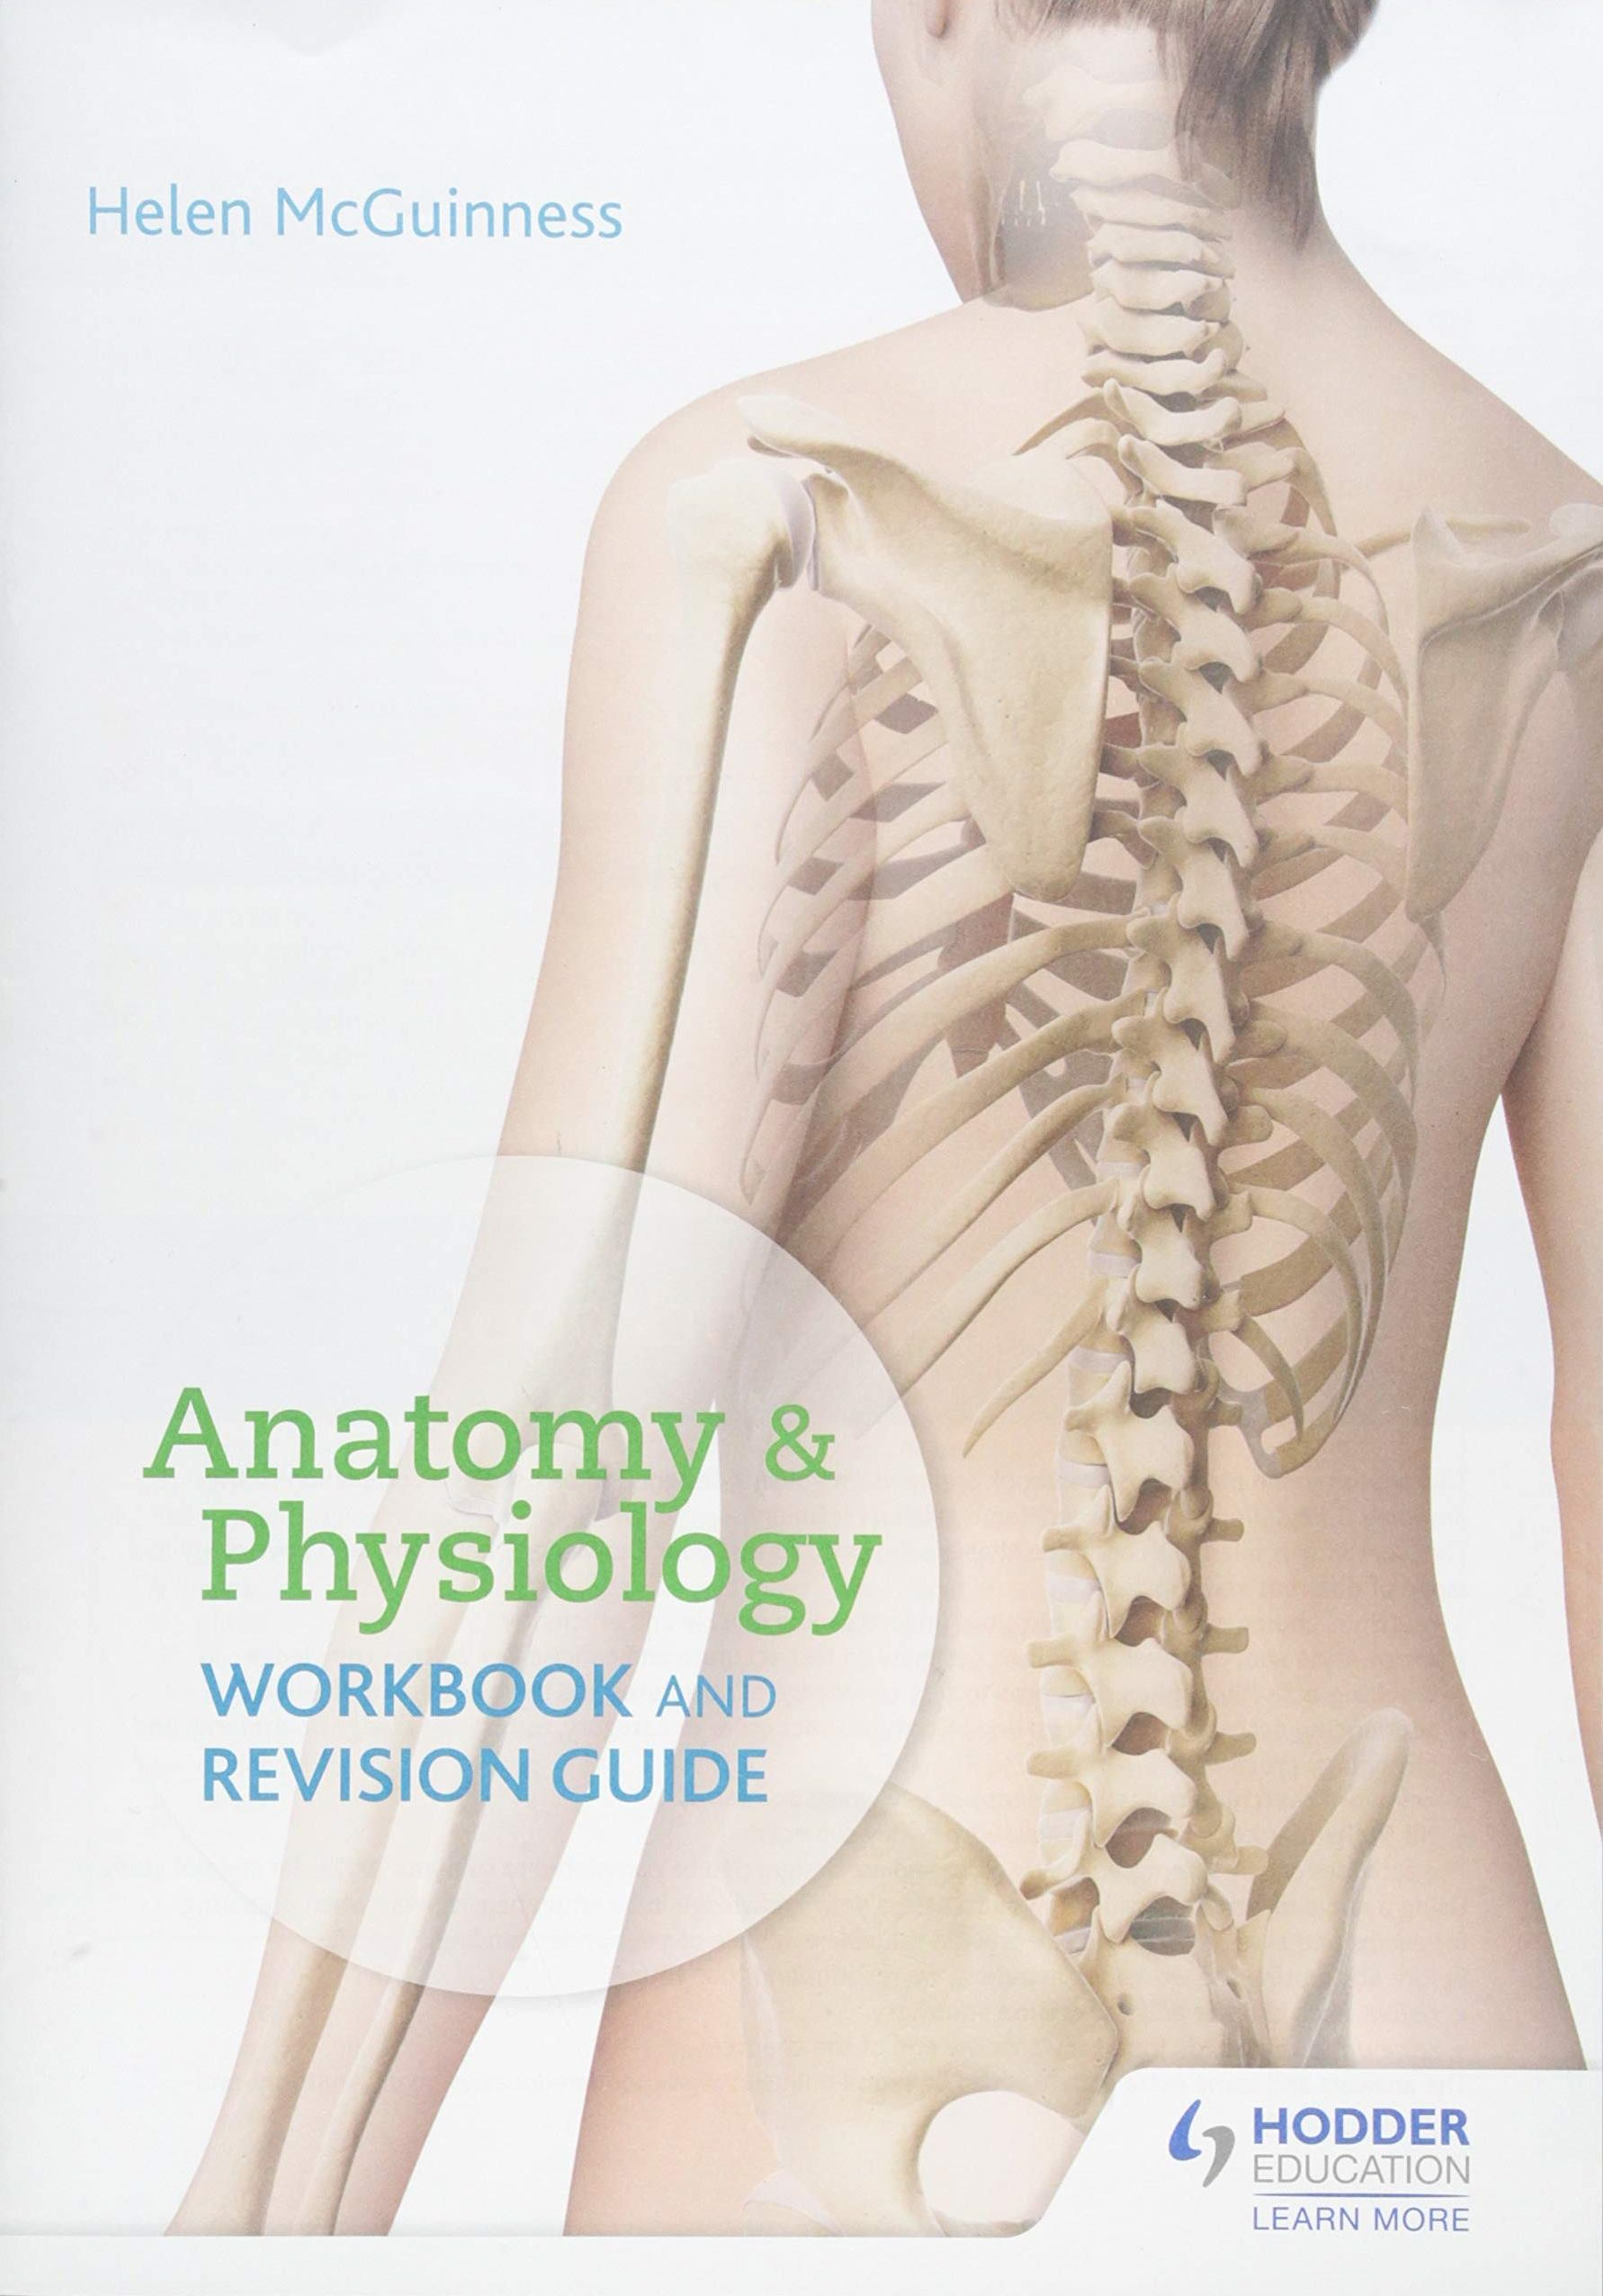 Anatomy & Physiology Workbook and Revision Guide Helen McGuinness